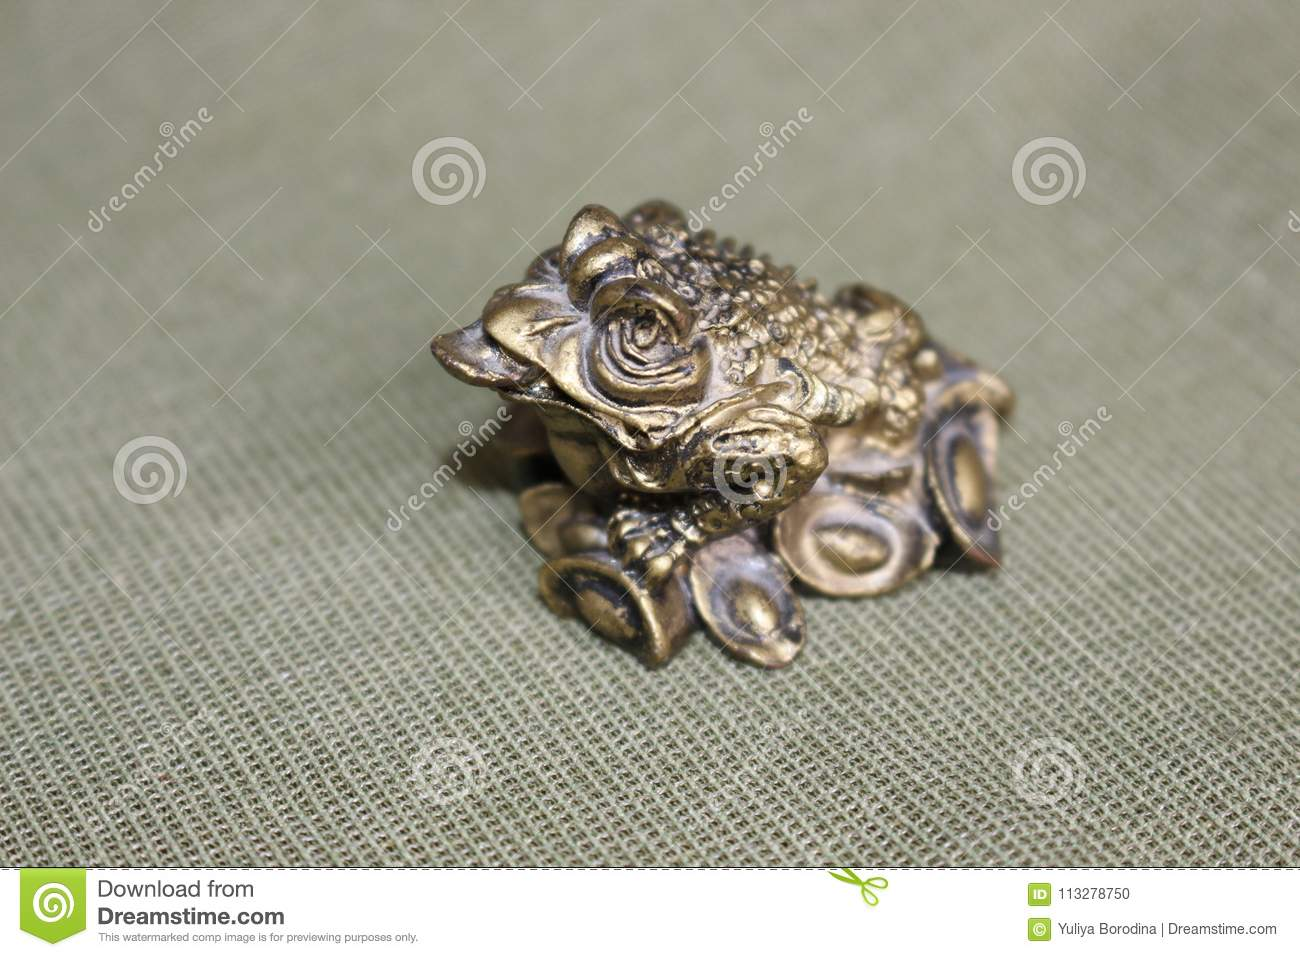 Frog symbol, bringing money, prosperity